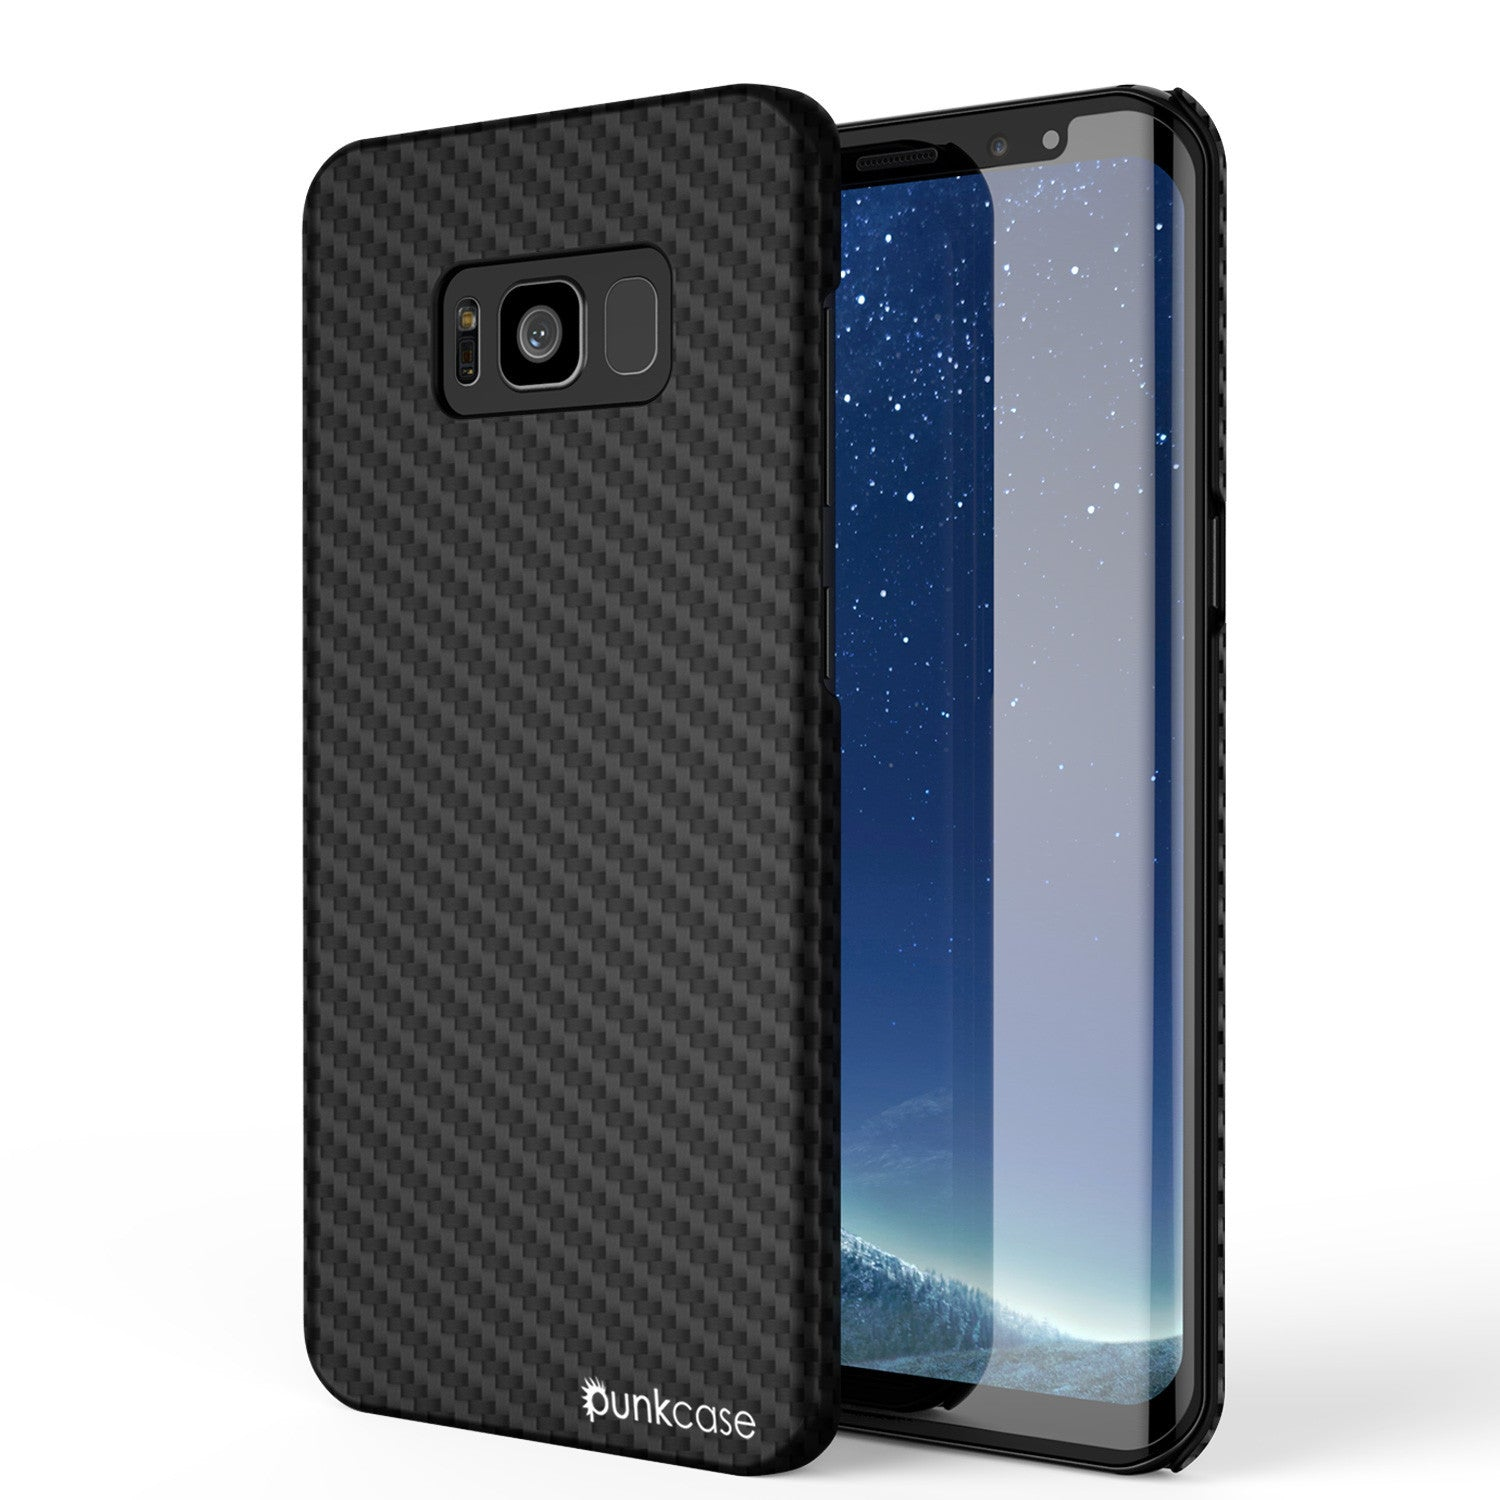 Galaxy S8 Case, PunkCase CarbonShield, Jet Black